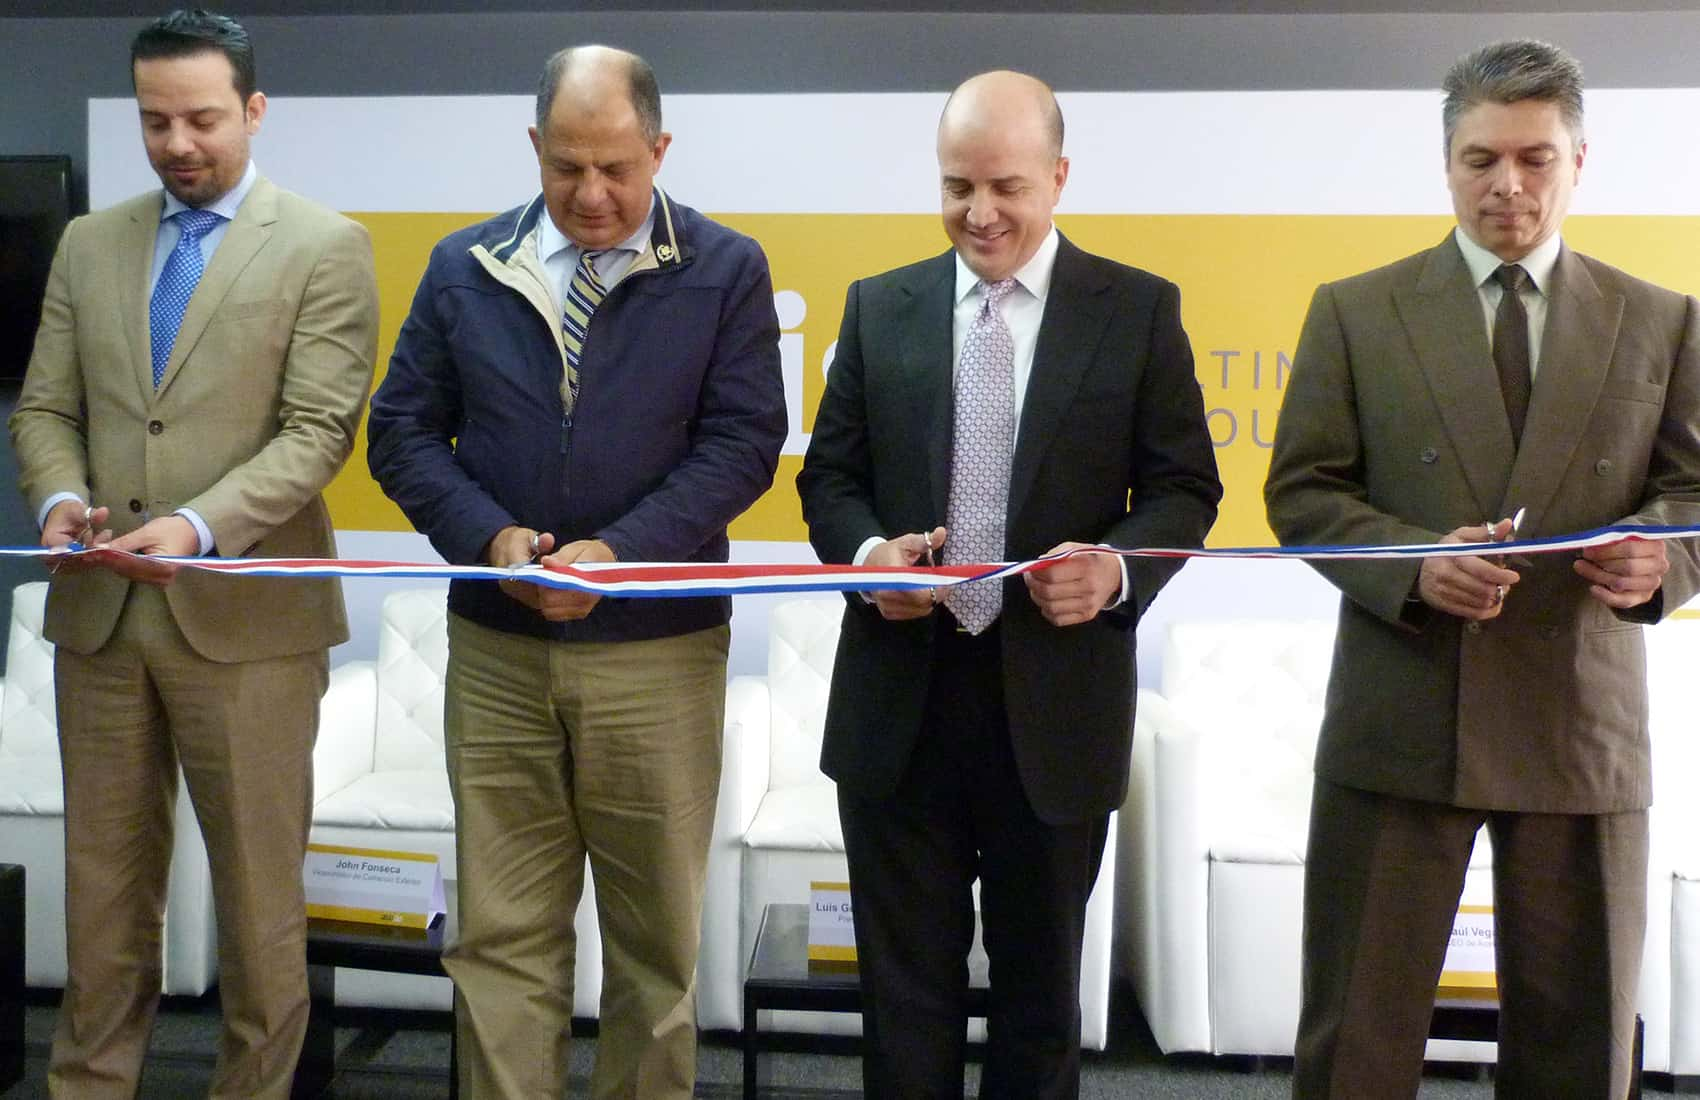 Inauguration of Auxis's new plant in Costa Rica. Oct. 30 2015.